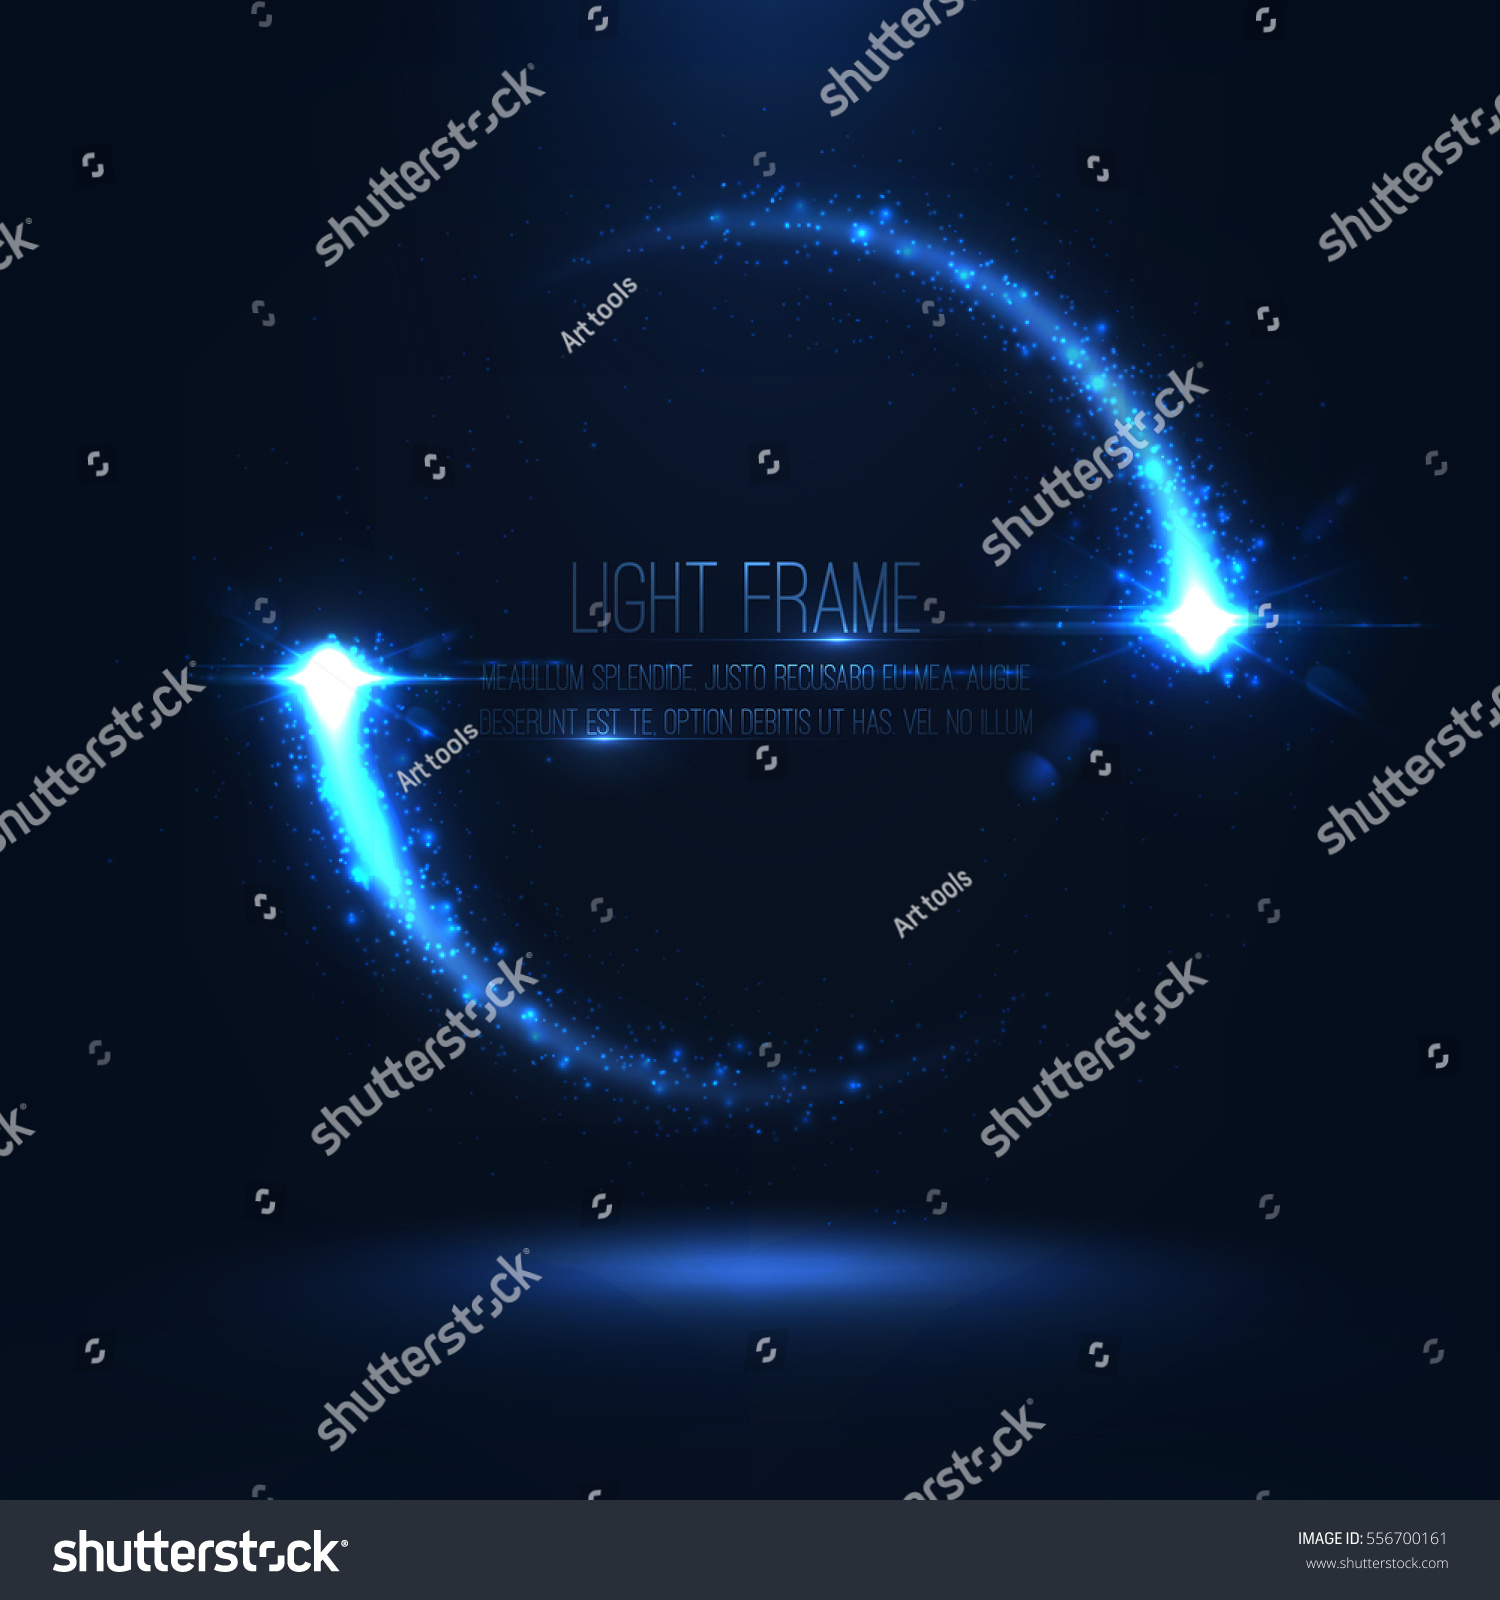 Magic Light Frame Consist Glowing Particles Stock Vector 556700161 ...